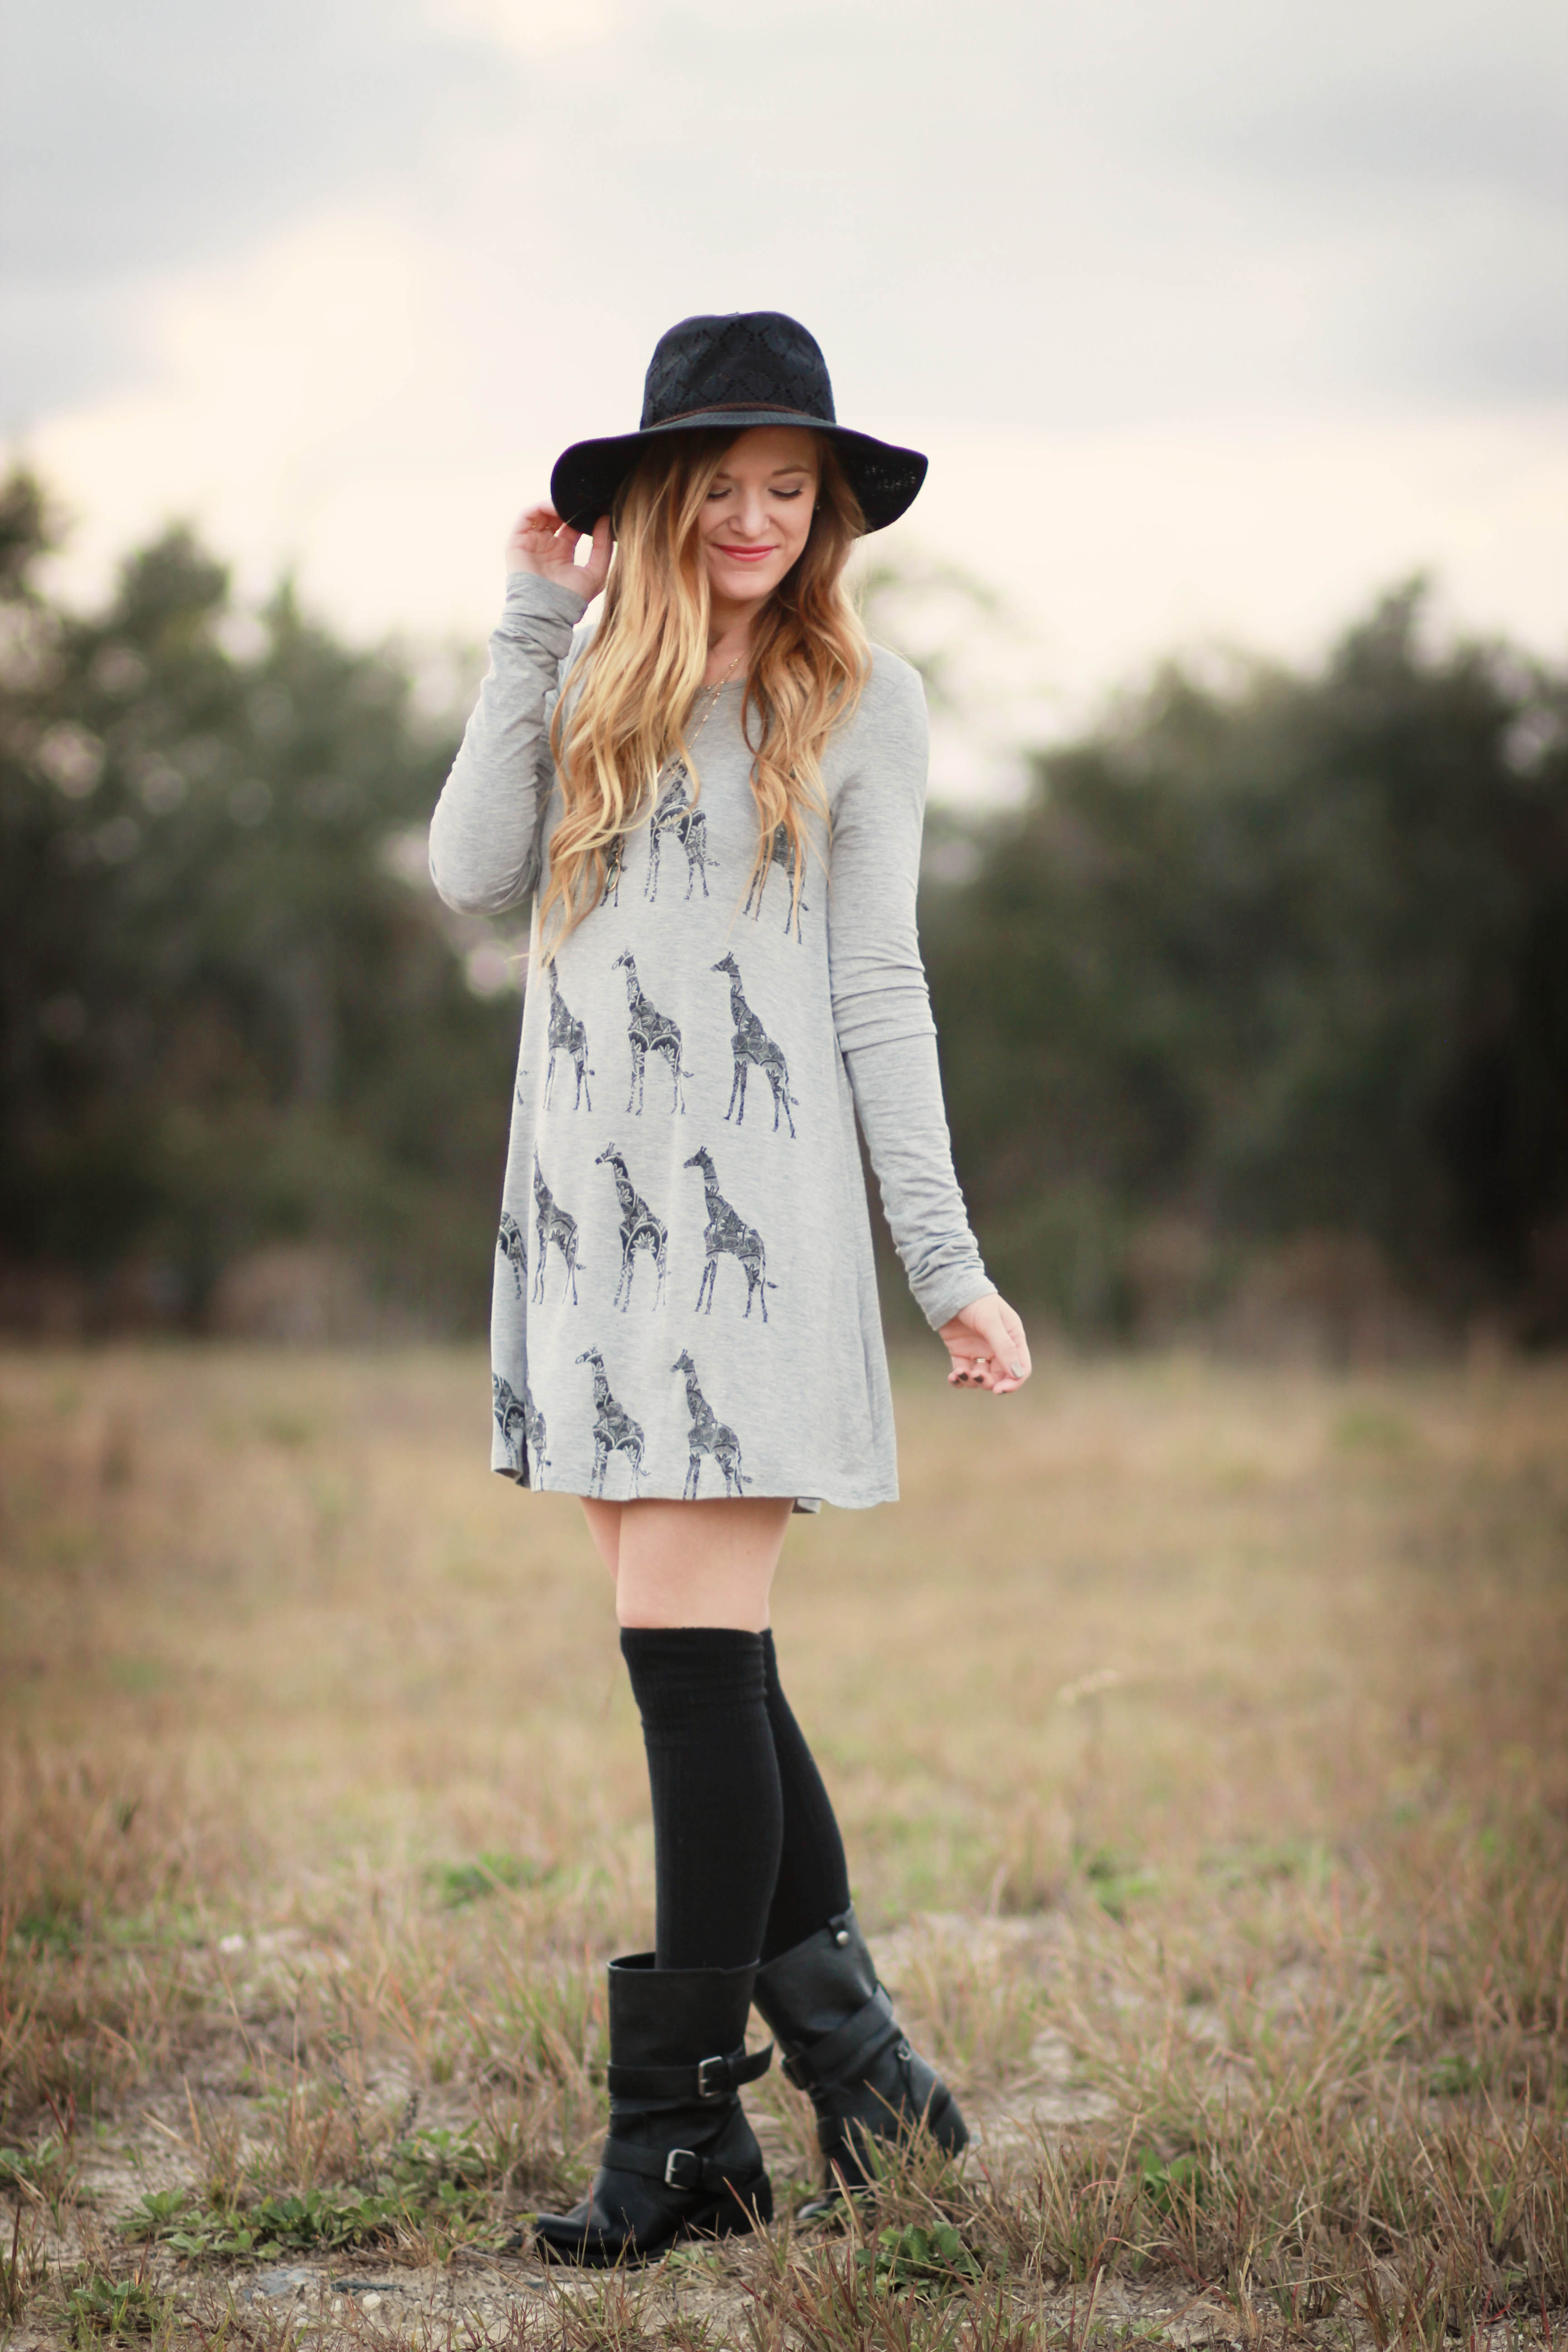 orlando, florida style blogger styles giraffe dress with free people hat, combat boots and knee socks for a casual boho outfit